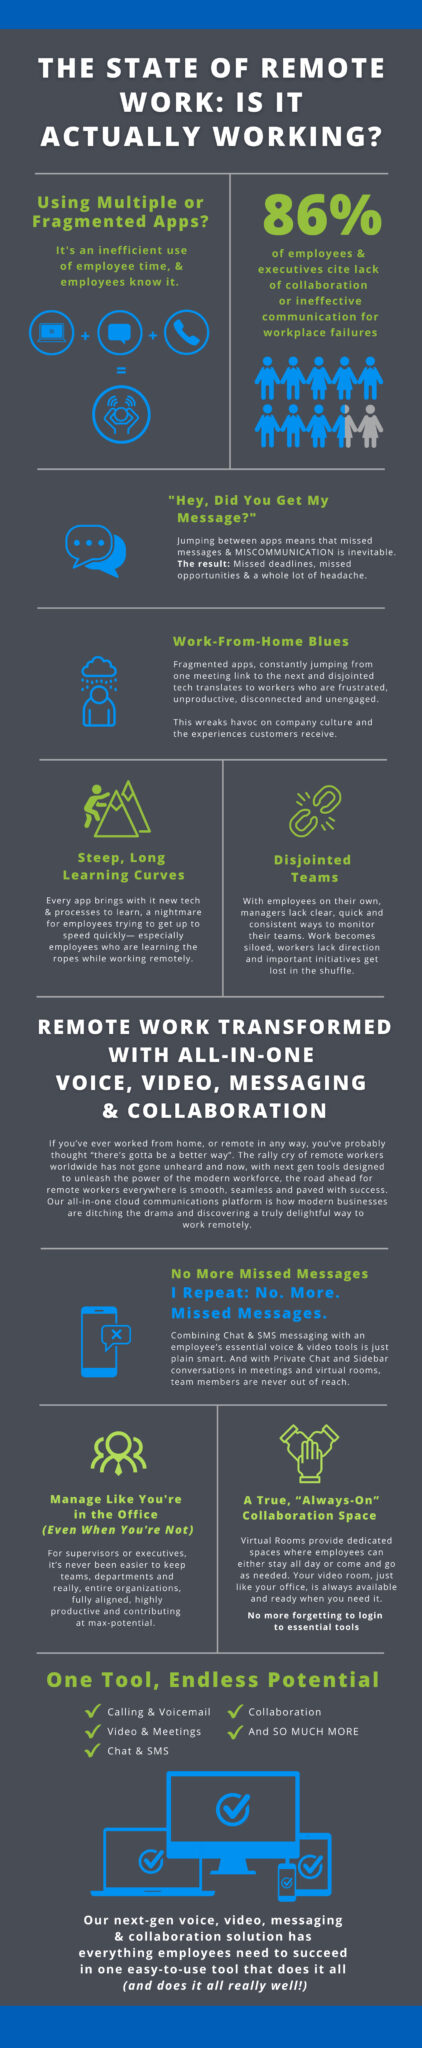 Infographic- The State of Remote Work